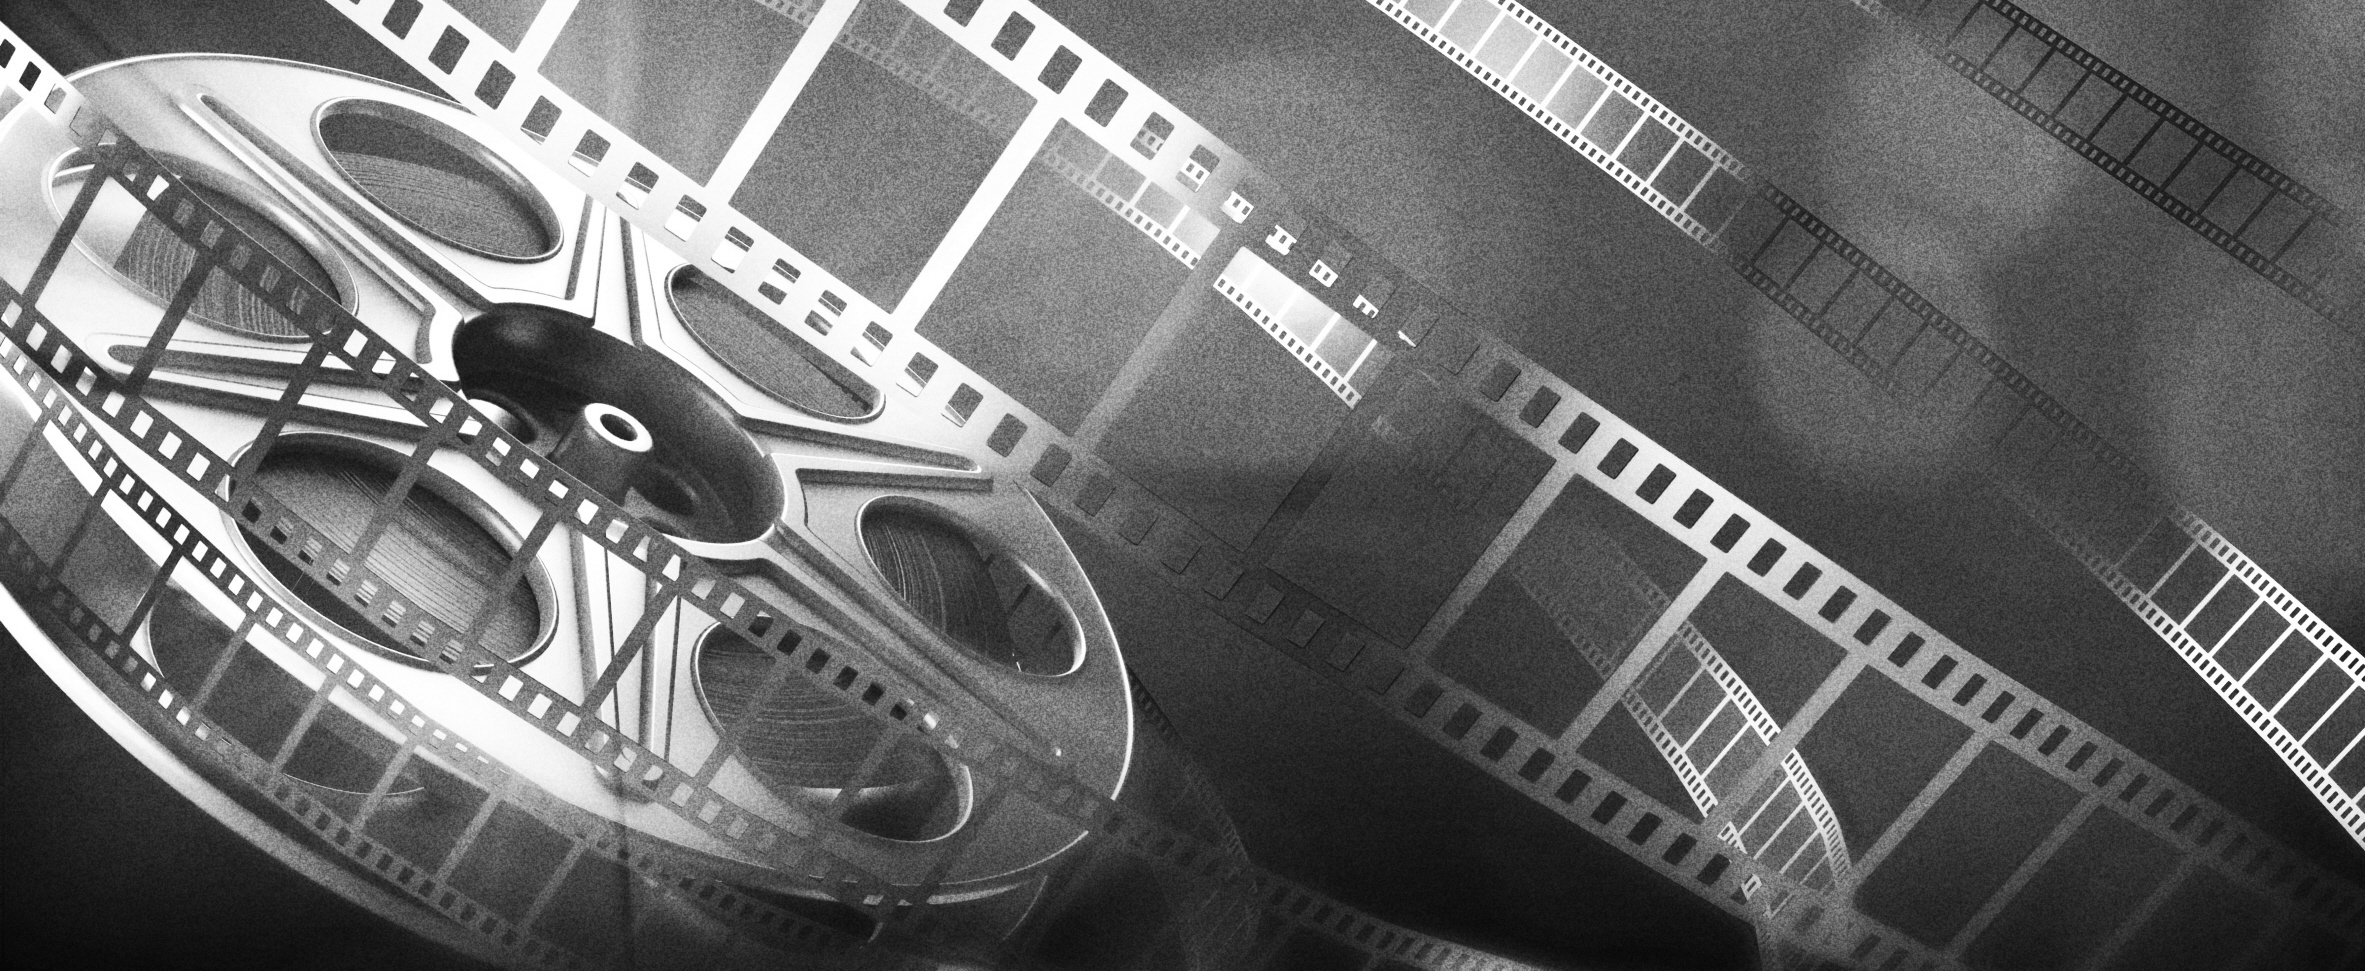 35mm movie film